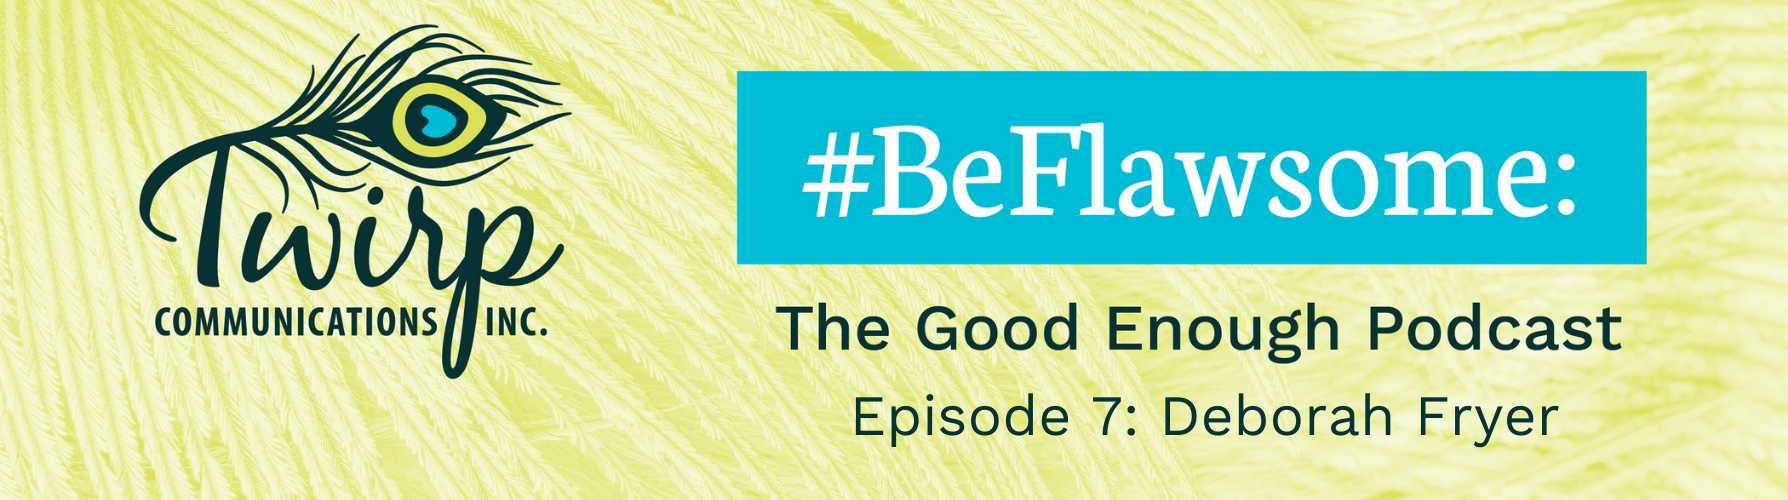 #BeFlawsome Podcast Episode 7 Banner